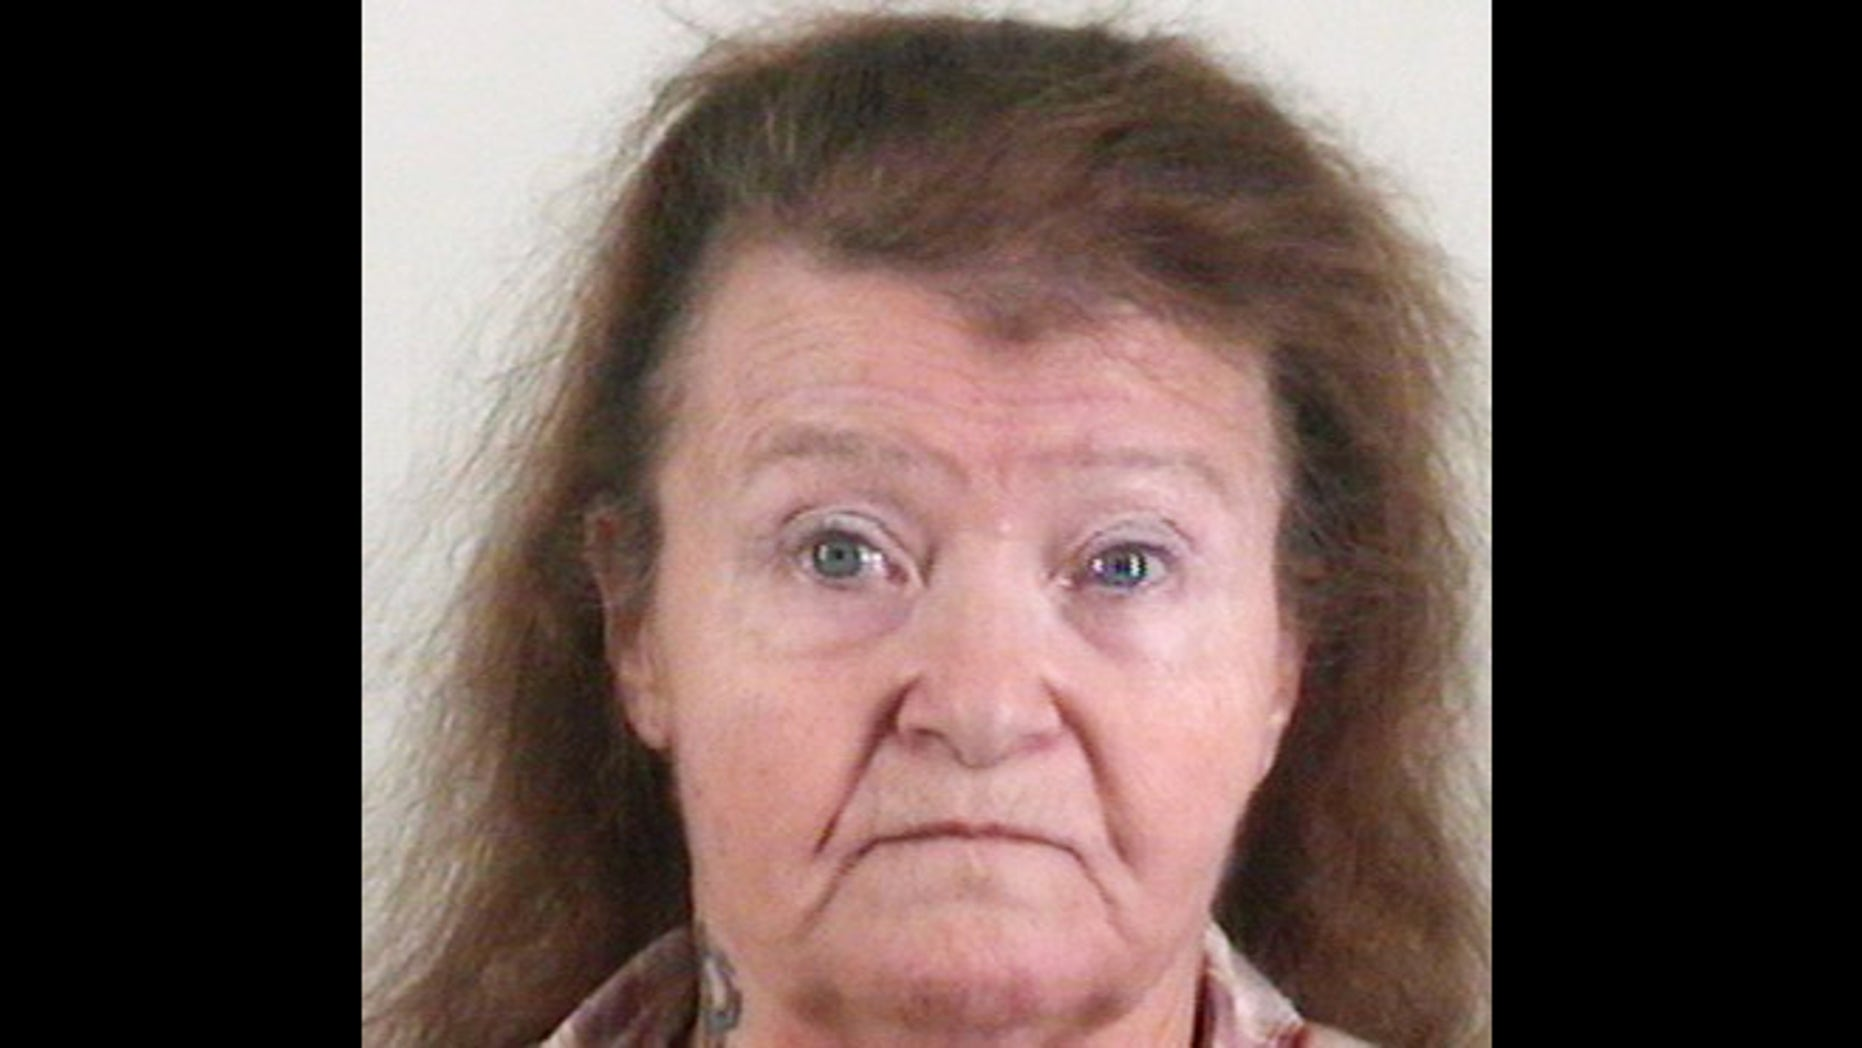 This photo provided by the Tarrant County Sheriff's Office shows Neola Robinson. The 62-year-old widow has been charged with murder after her long-missing husband, Ervin Robinson was found buried in the front yard of their Pelican Bay, Texas home. He was reported missing by his employer in May 2010.